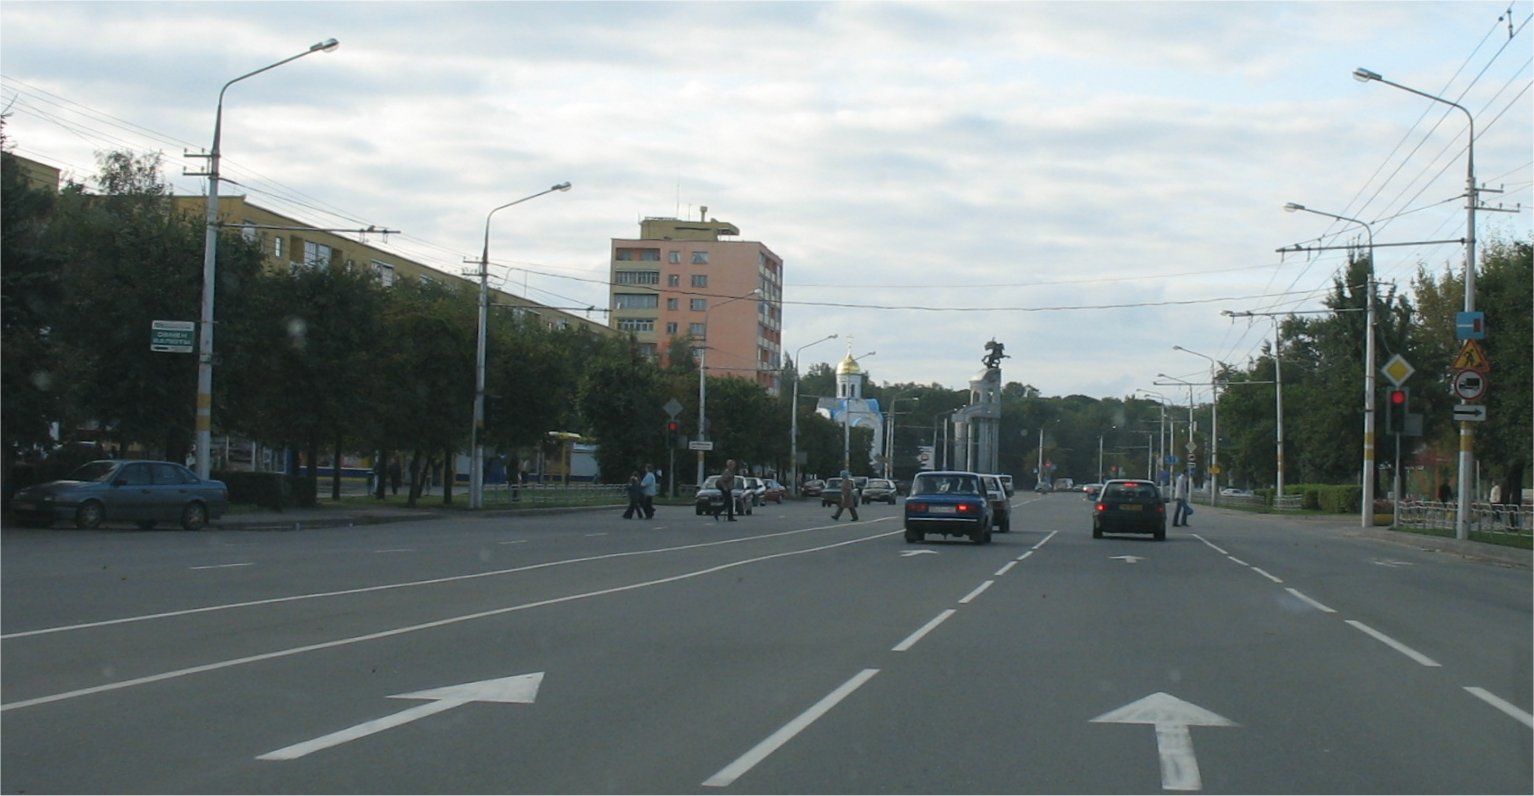 File:Bobruisk city Minsk Road BY.jpg - Wikimedia Commons